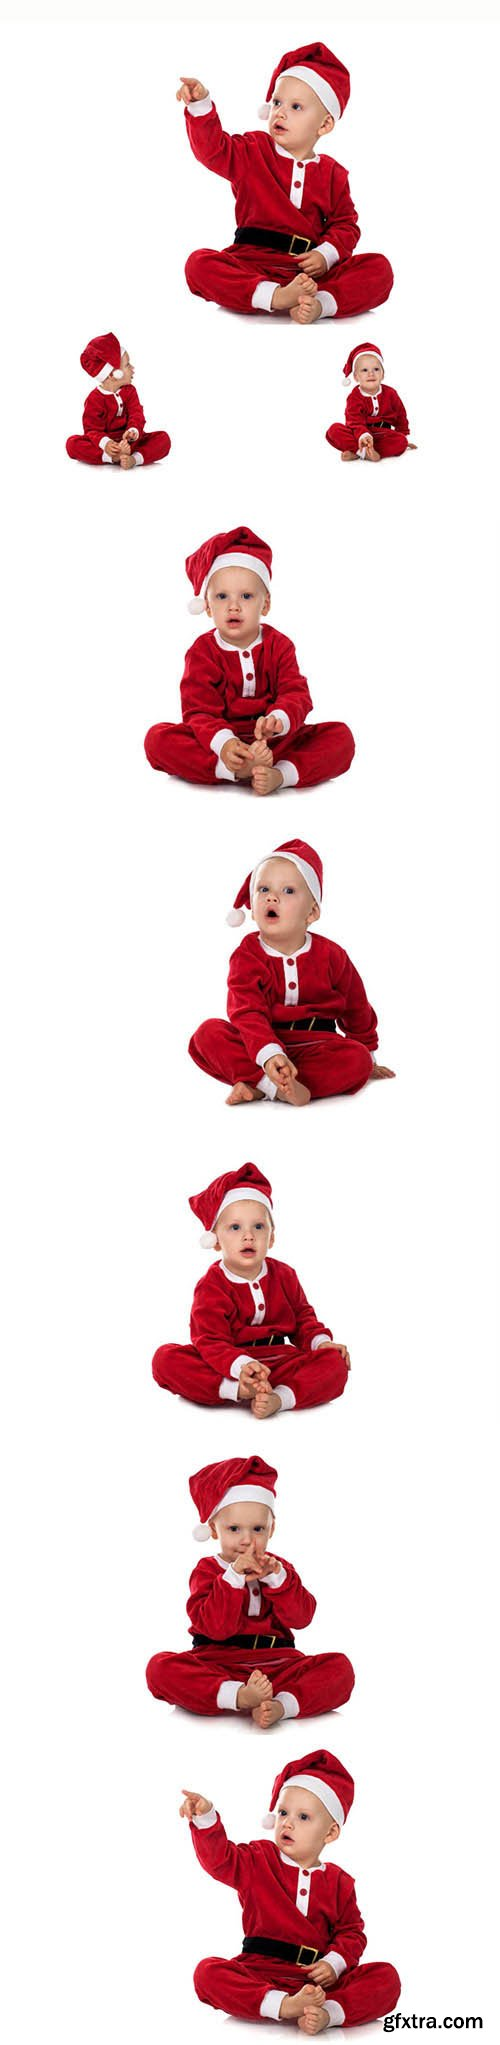 New Year and Christmas stock photos 83